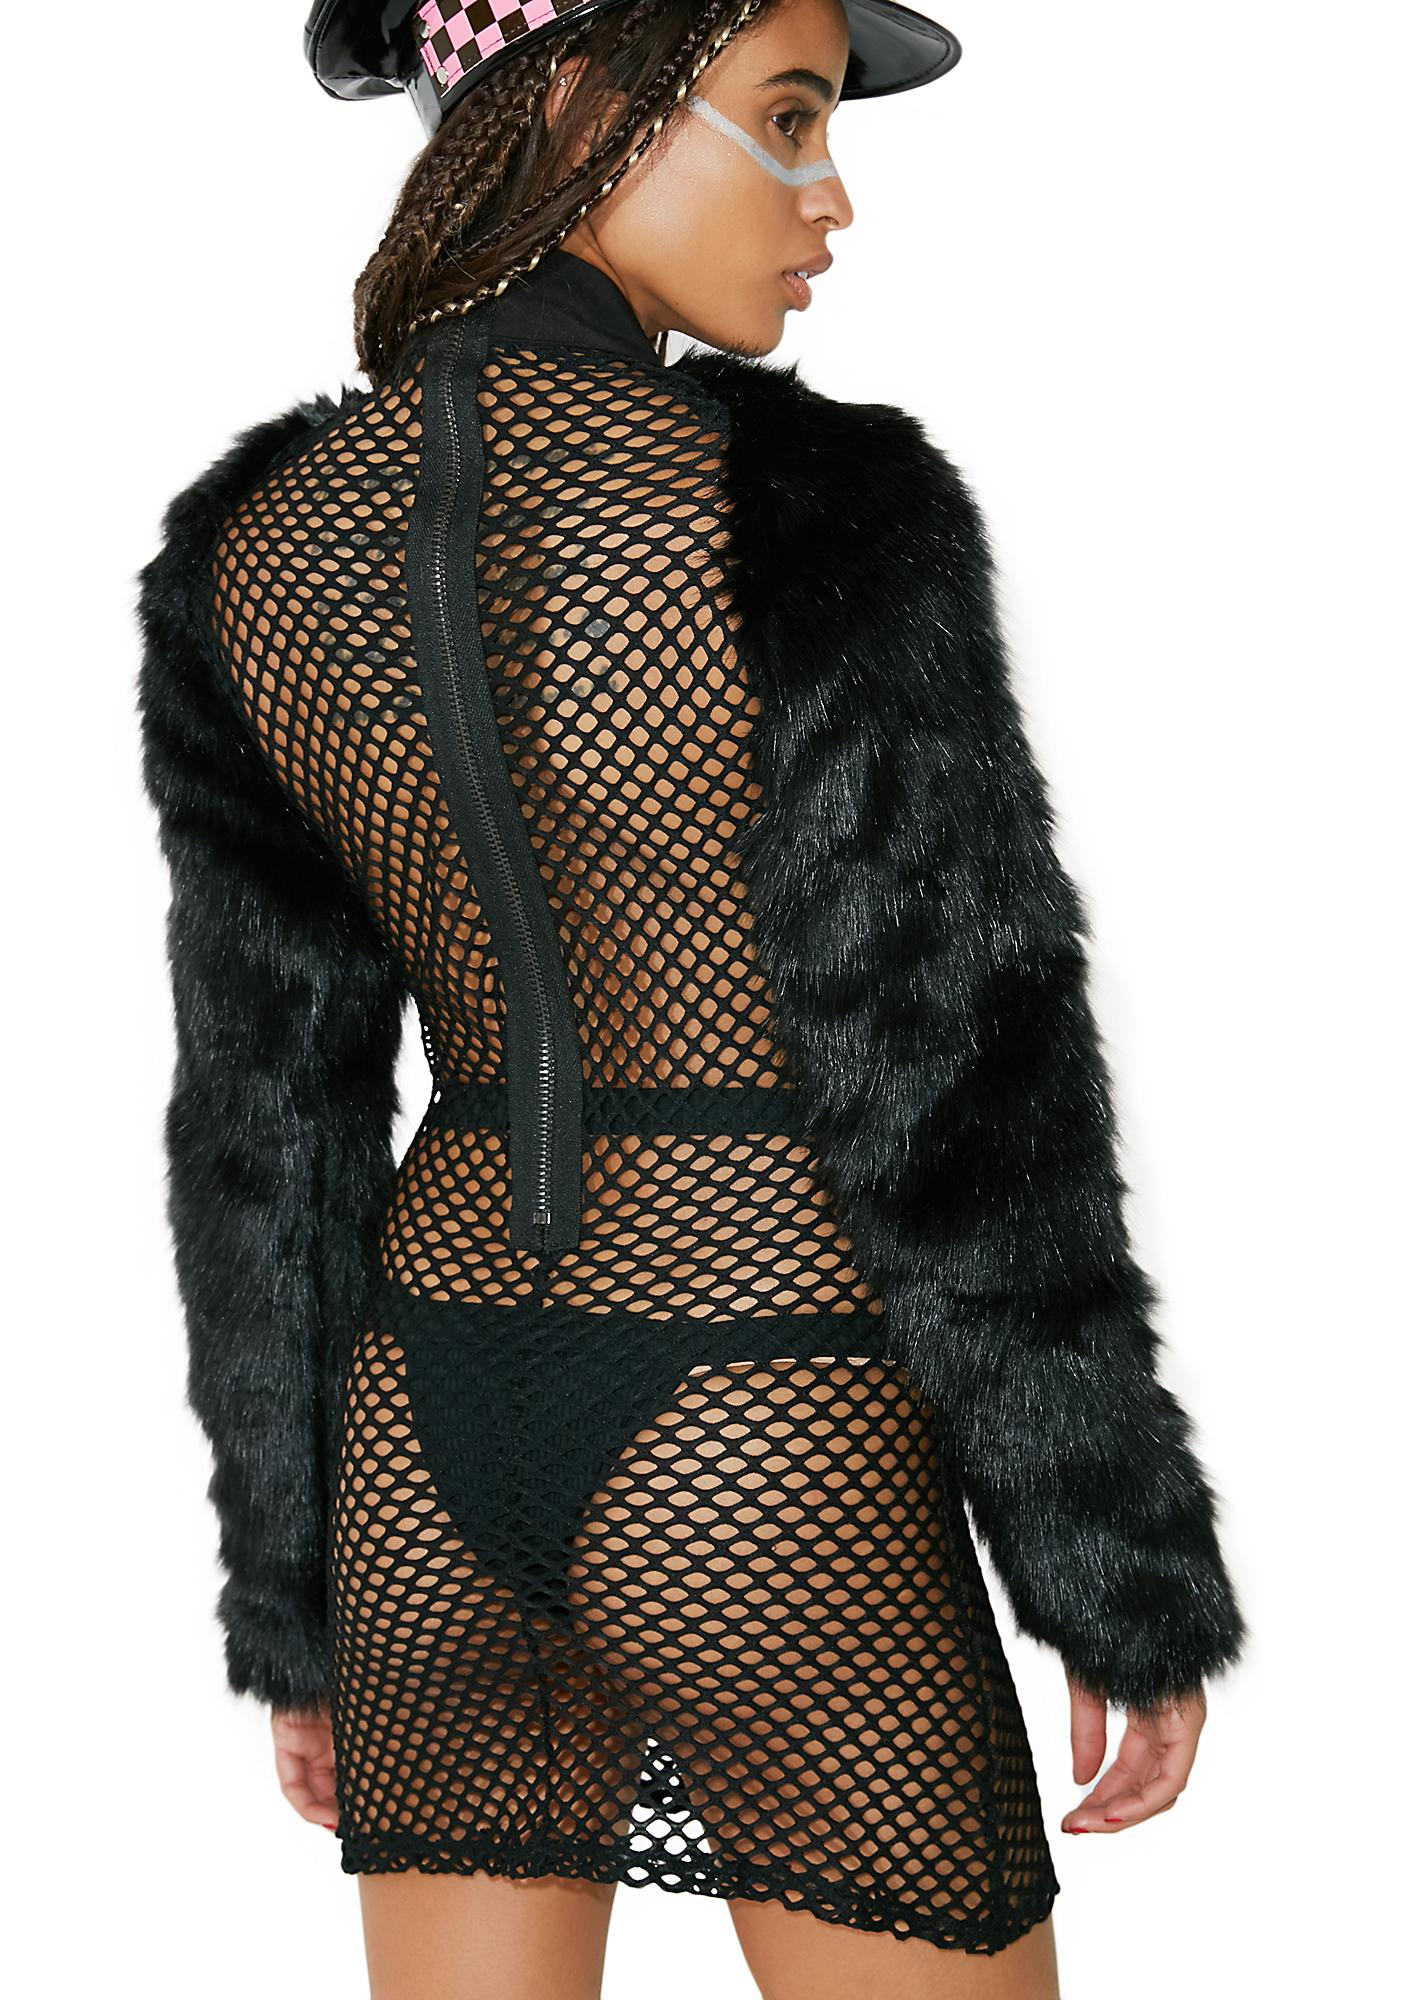 Club Exx Burn Baby Fur Sleeve Dress